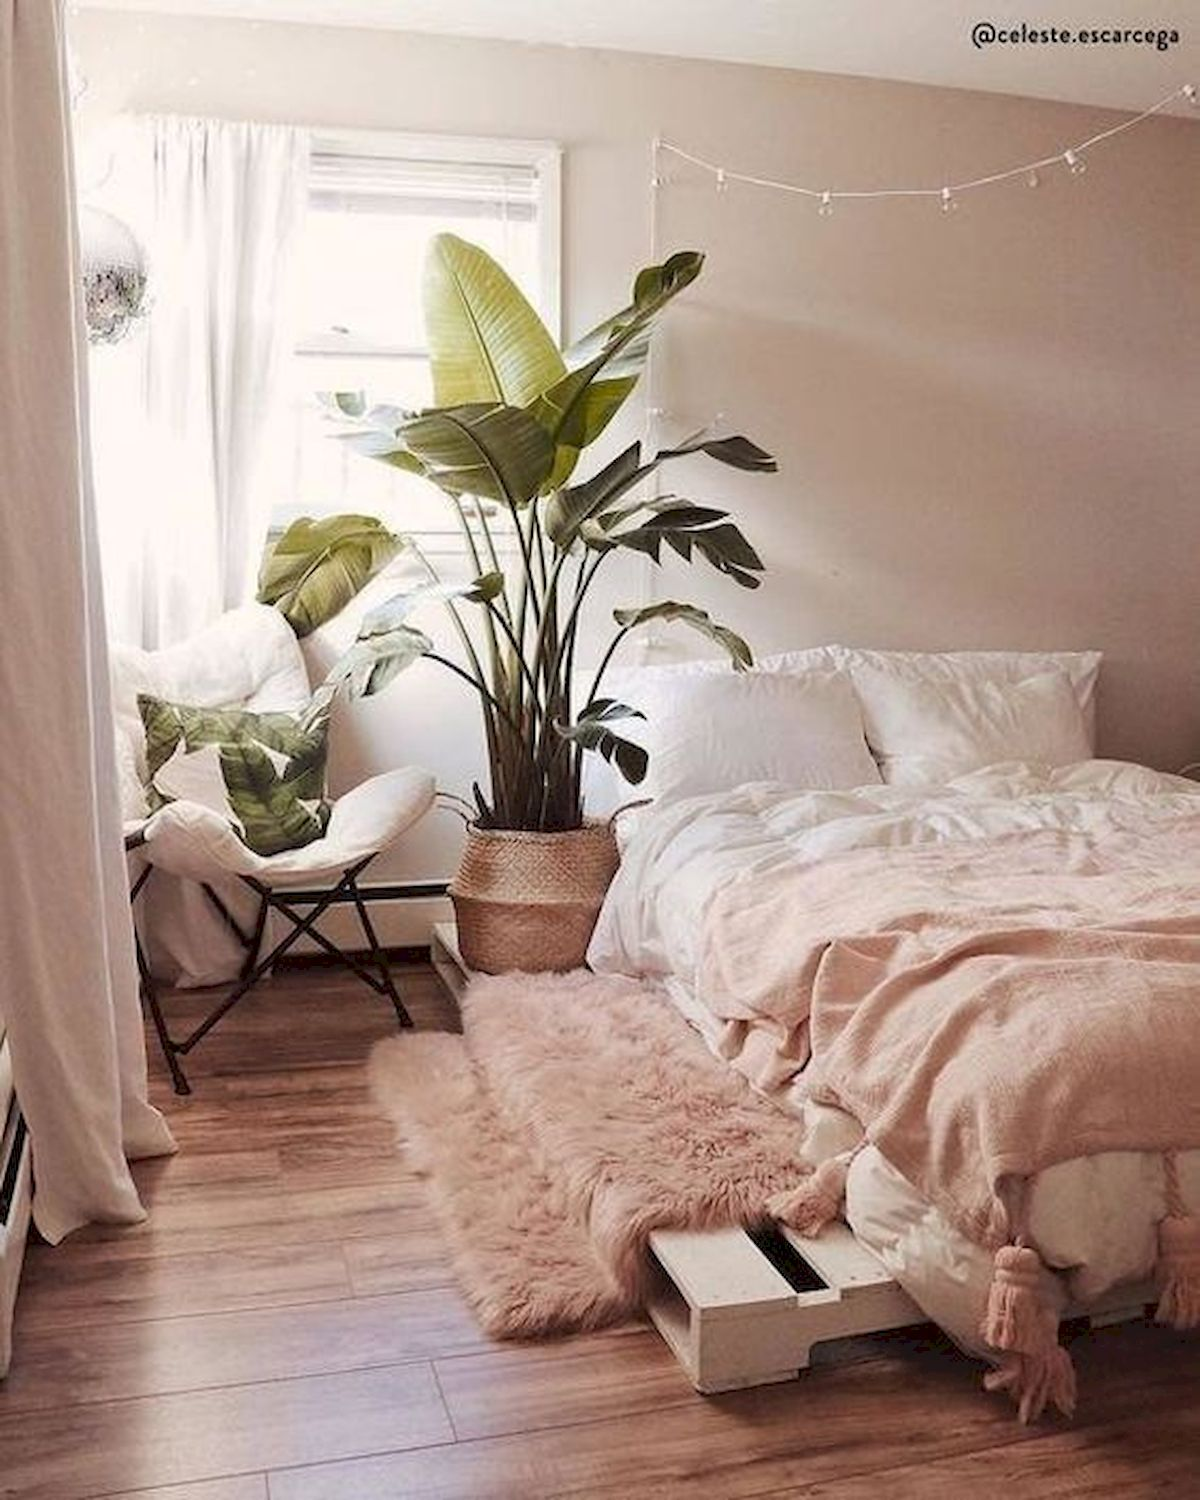 30 Cozy Fall Decoration Ideas For Your Bedroom (12)